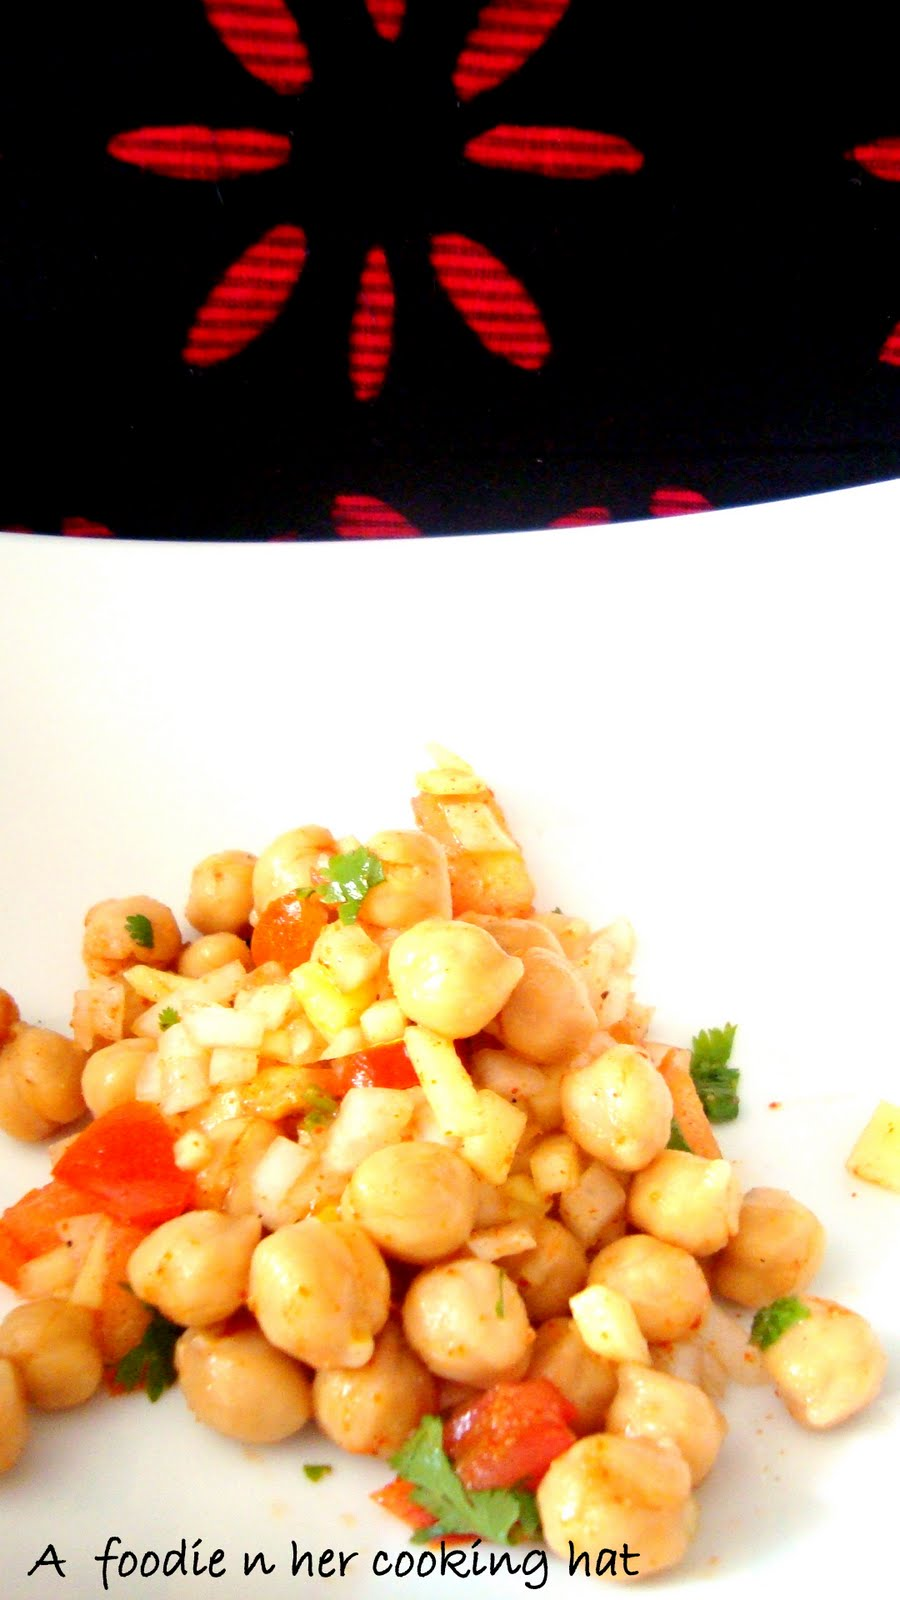 Salad with garbanzo beans and Indian spices | Spices and Aroma